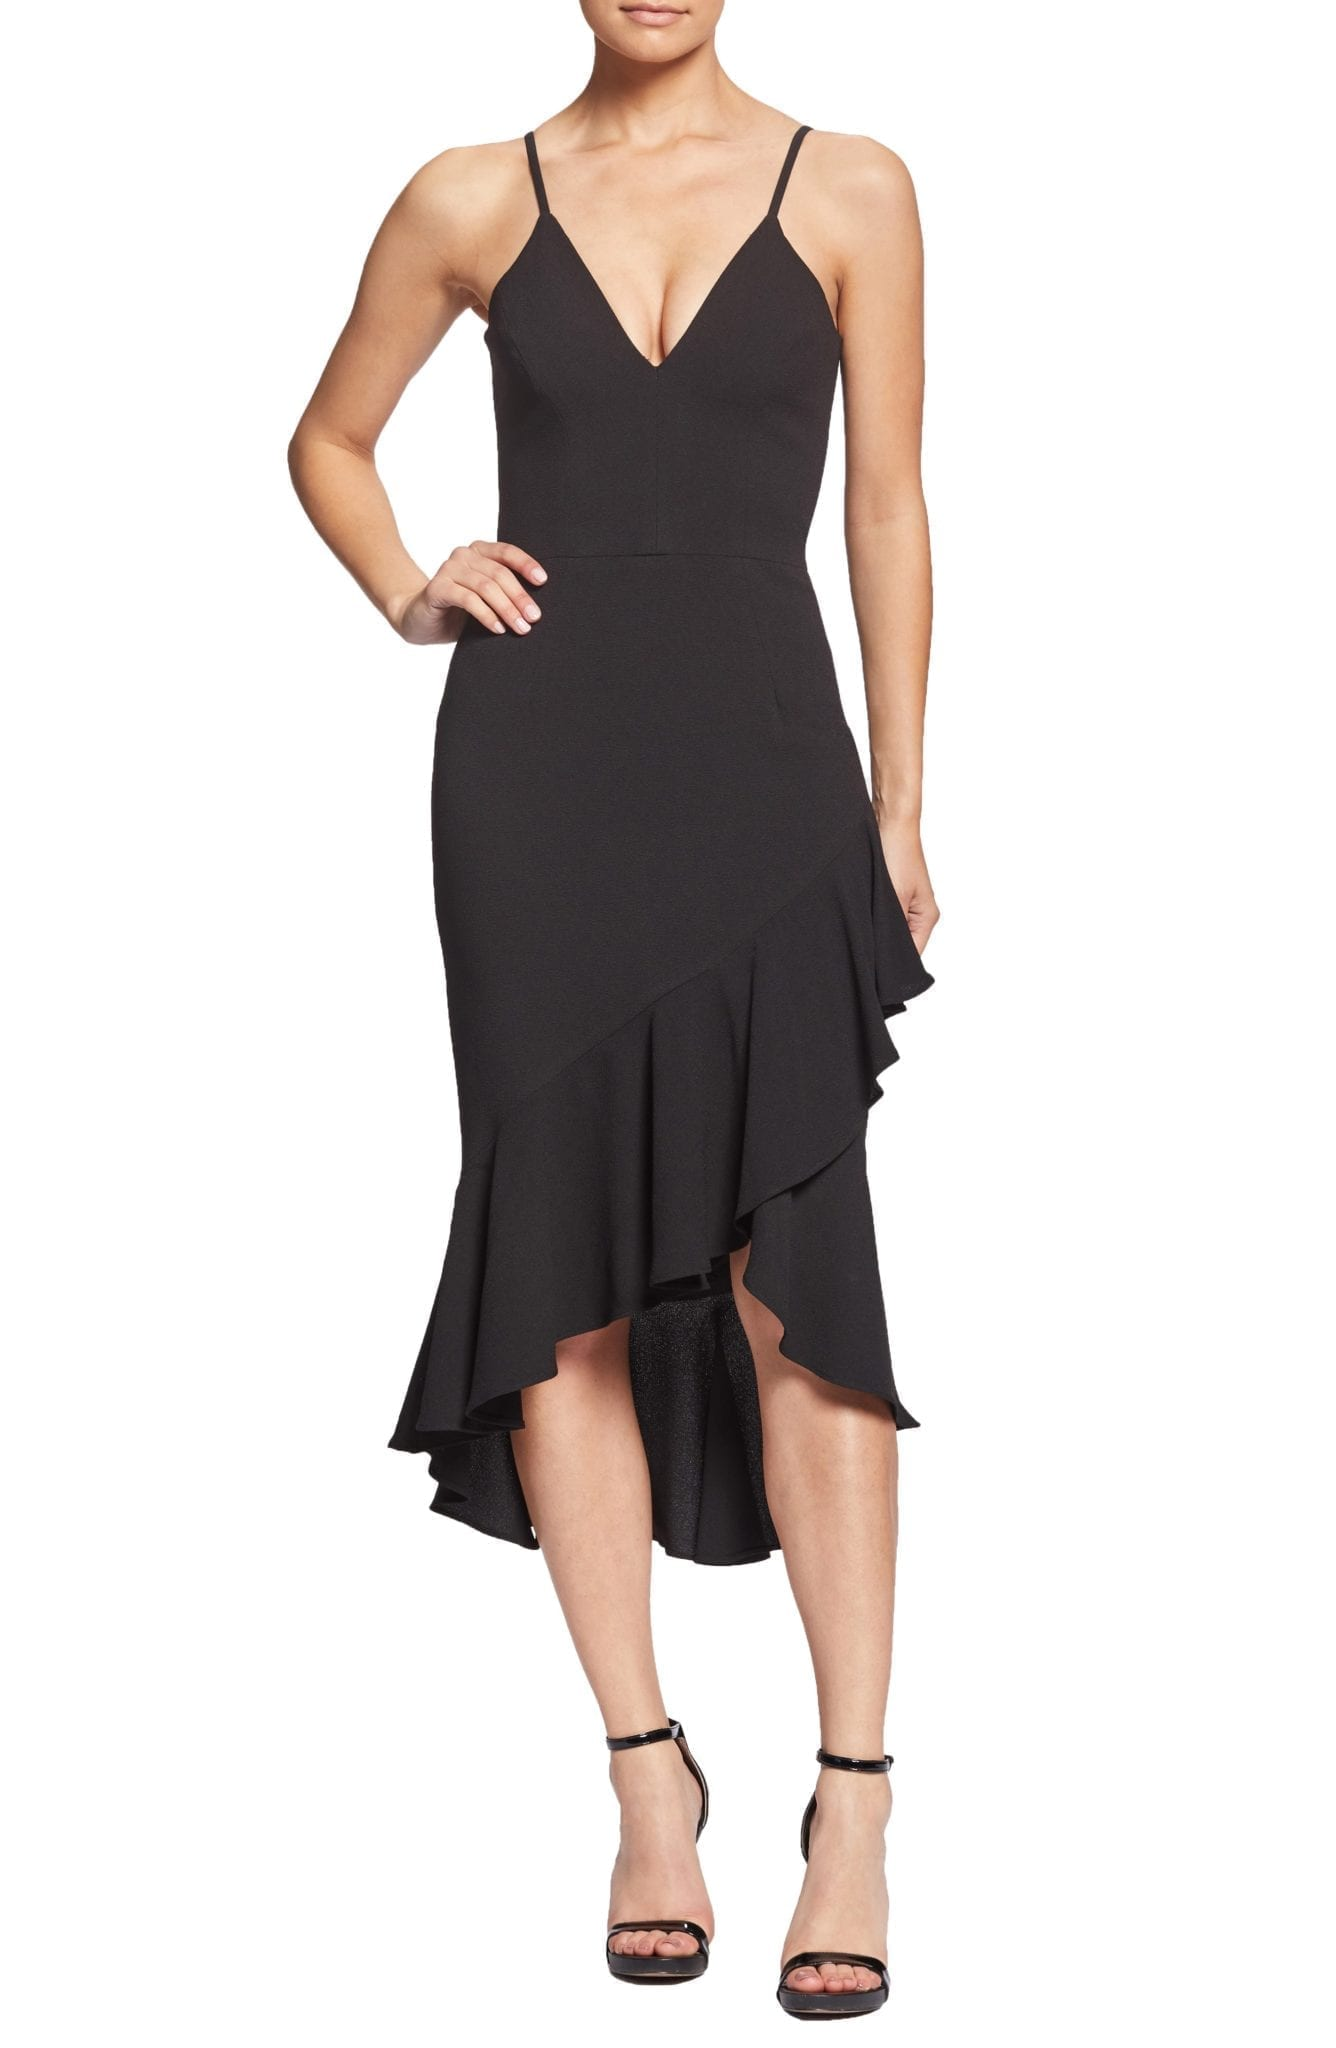 2d6d28db4ff DRESS THE POPULATION Wendy High Low Ruffle Cocktail Black Dress - We ...